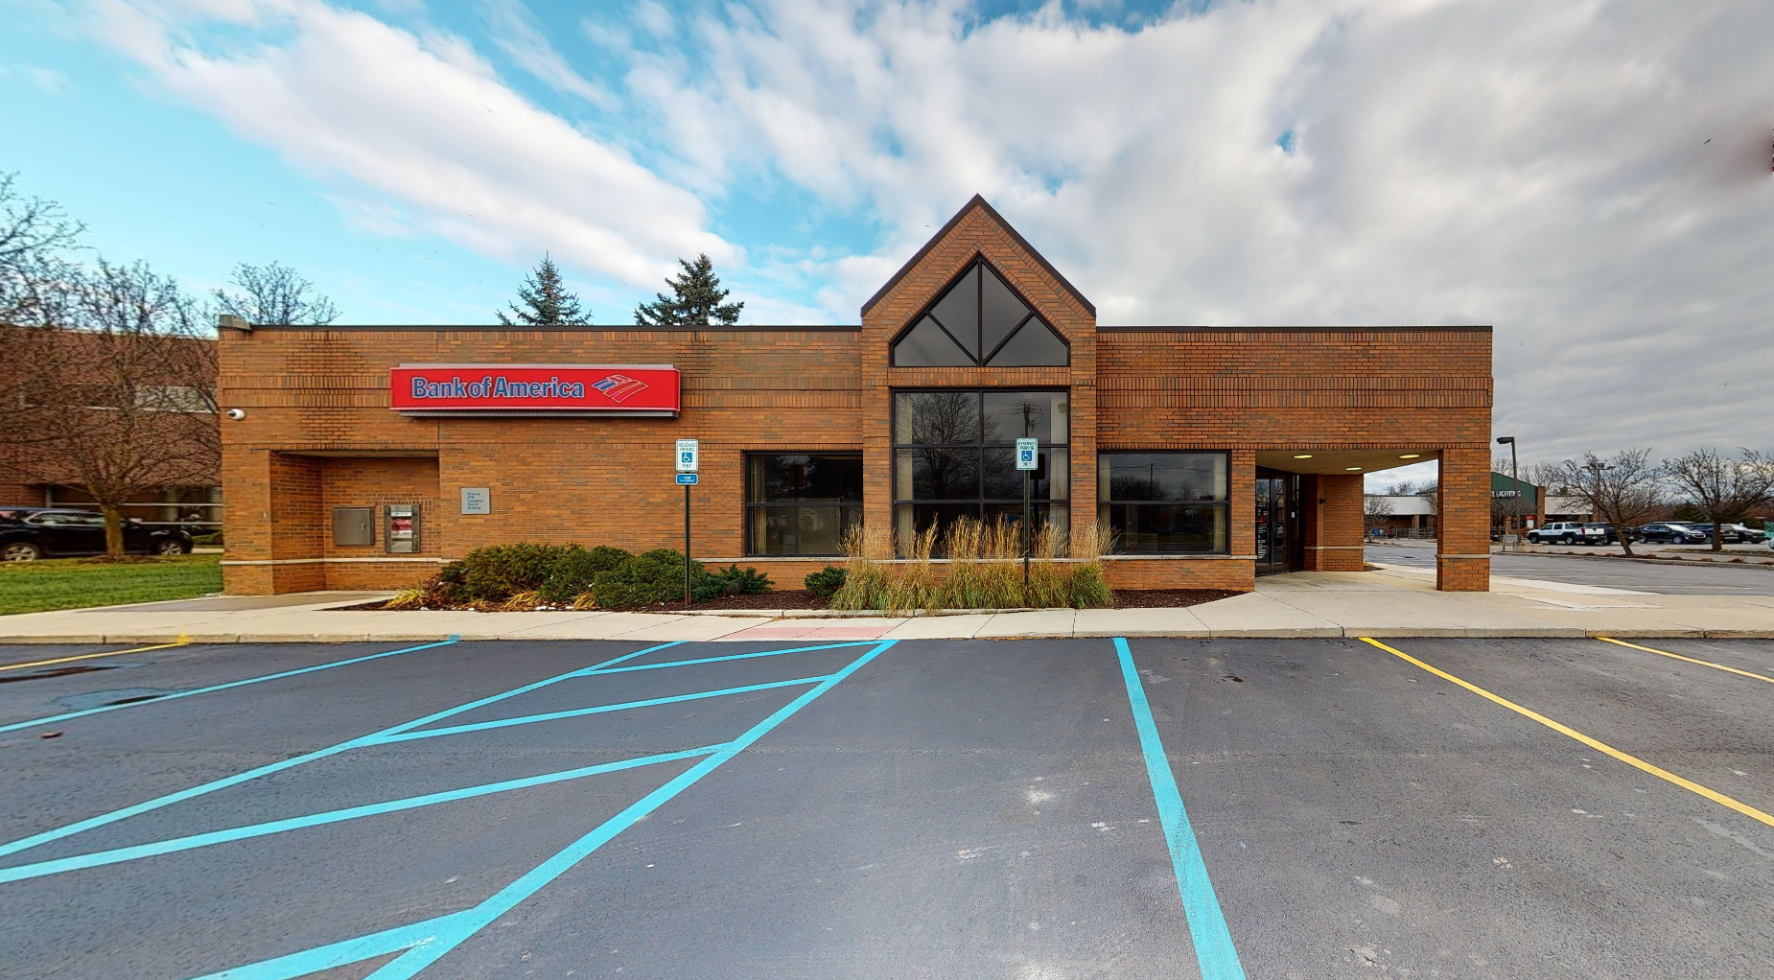 Bank of America financial center with drive-thru ATM | 1391 S Lapeer Rd, Lake Orion, MI 48360